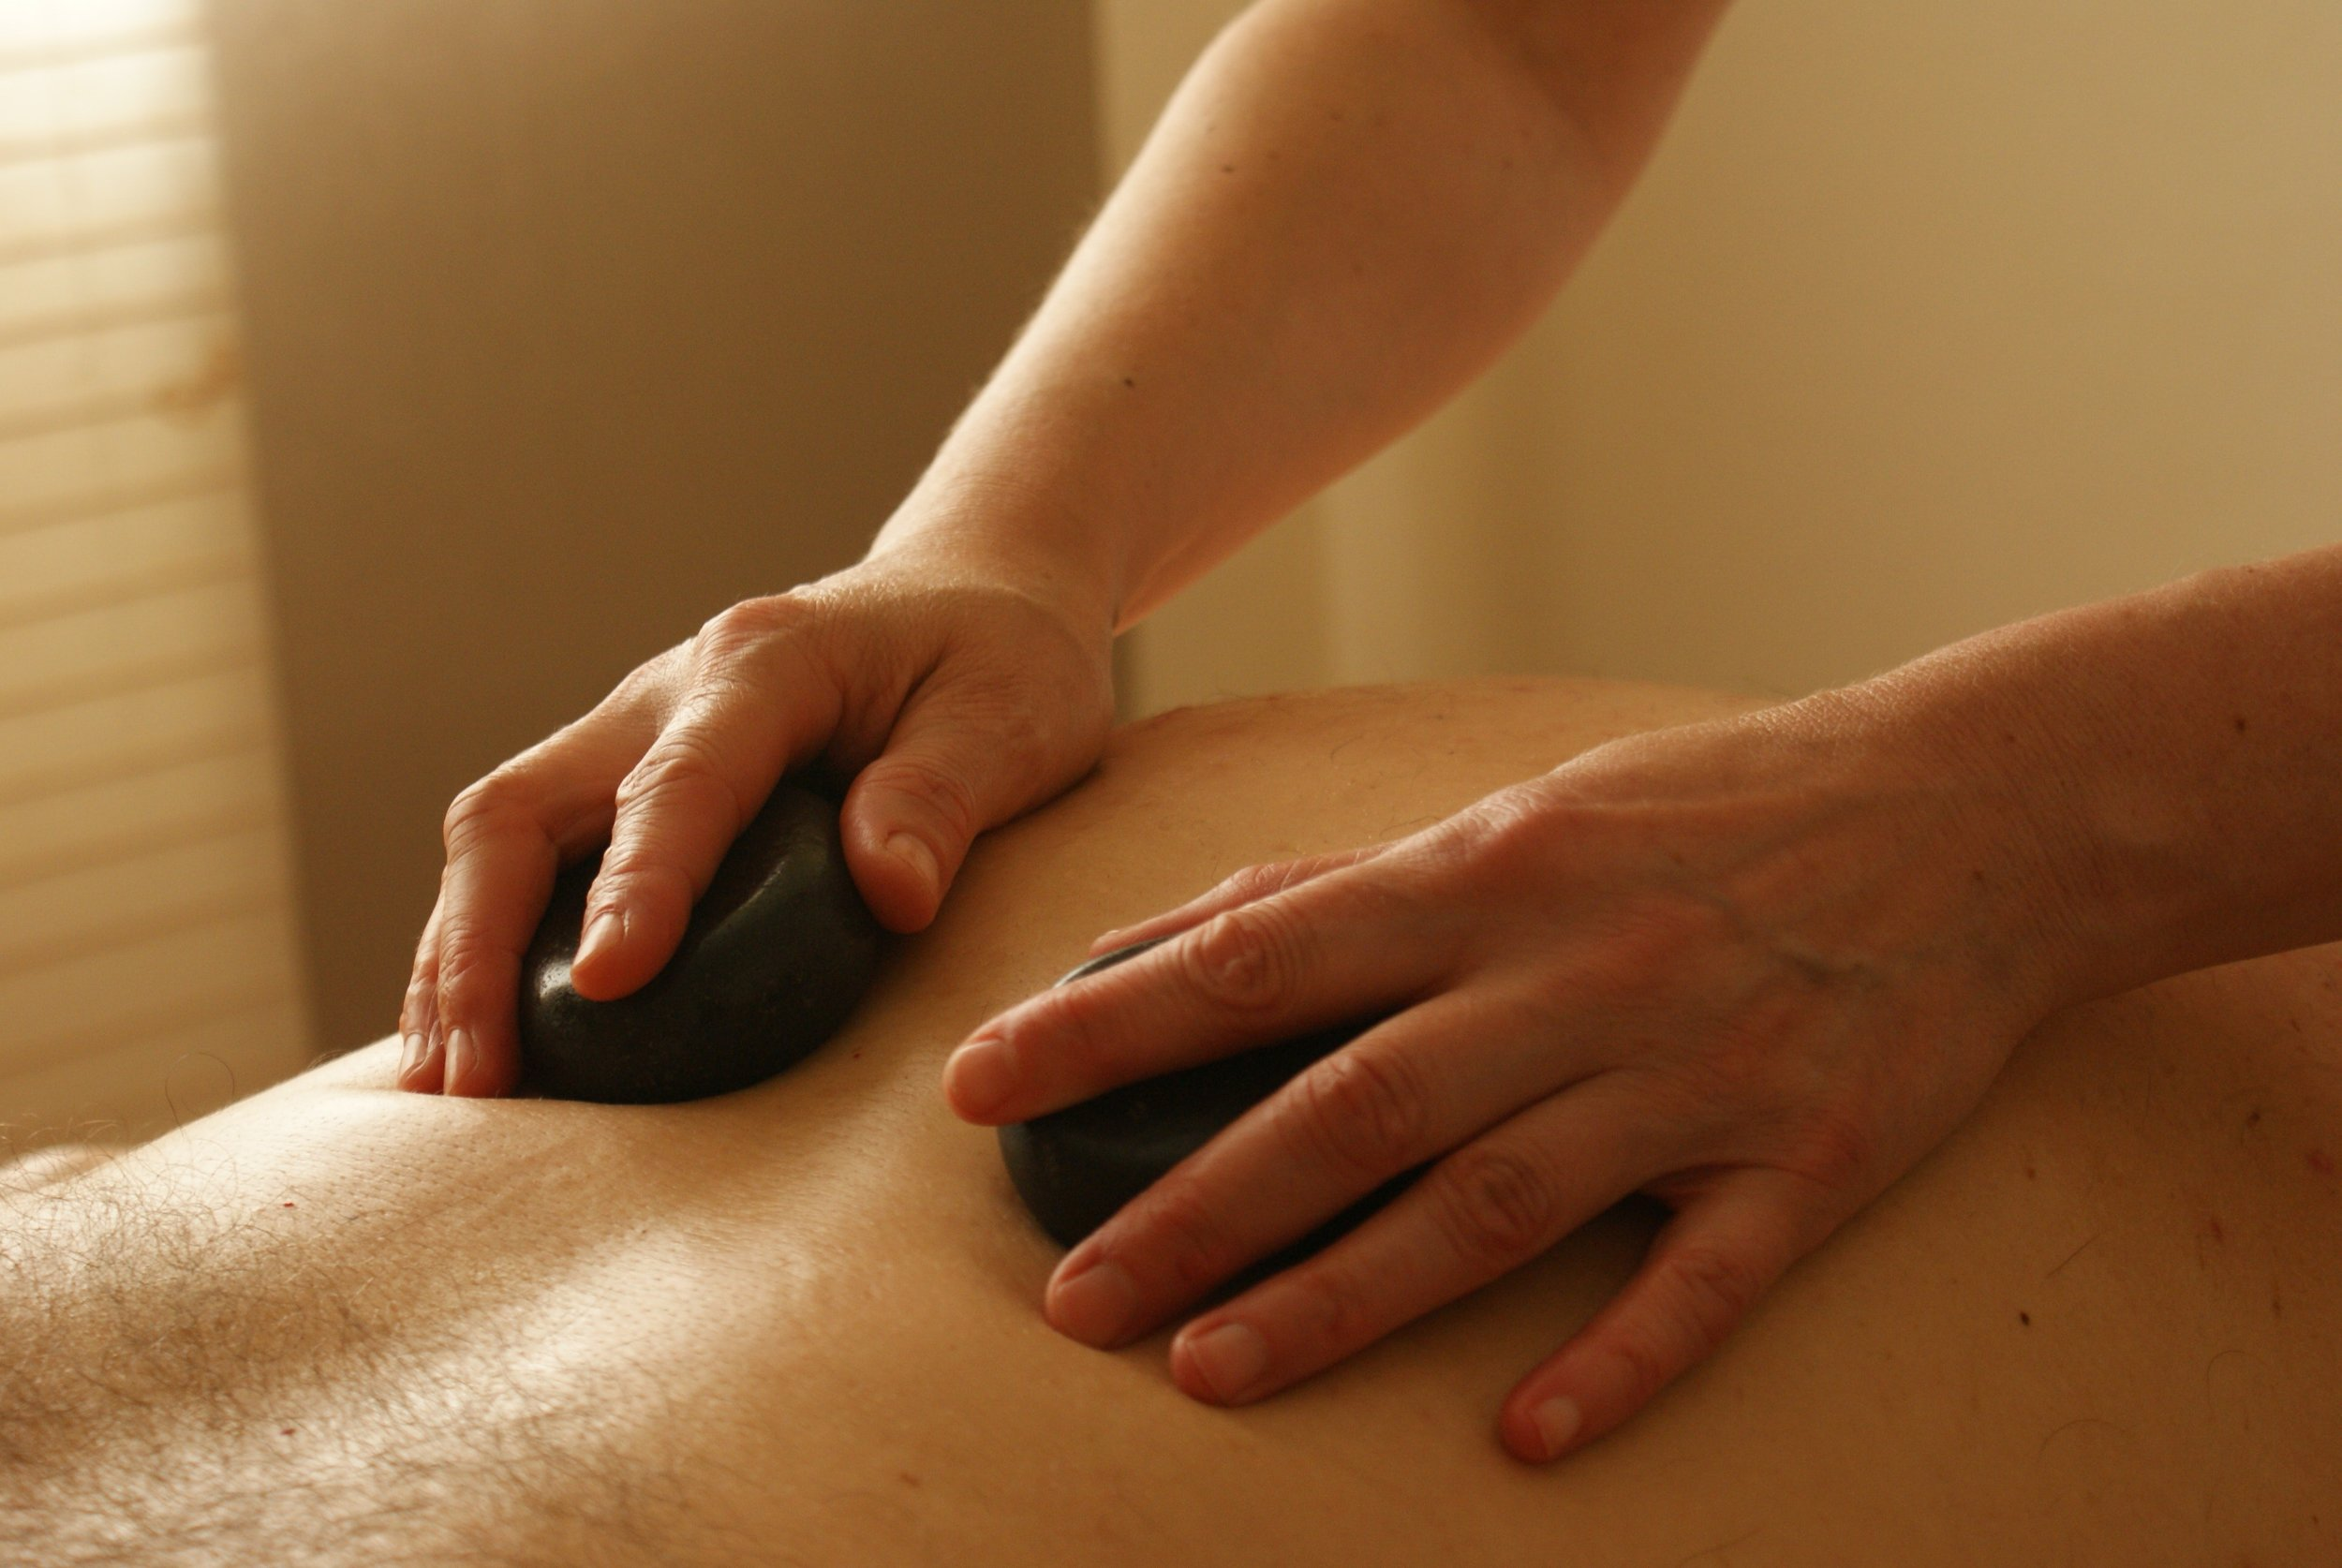 Hot Stone - This deep heat massage is very relaxing and soothing for the body and mind. Smooth basalt stones, are oiled and heated, then used to manage the entire body, promoting deep relaxation of the muscles and tissues.This is an additional $20